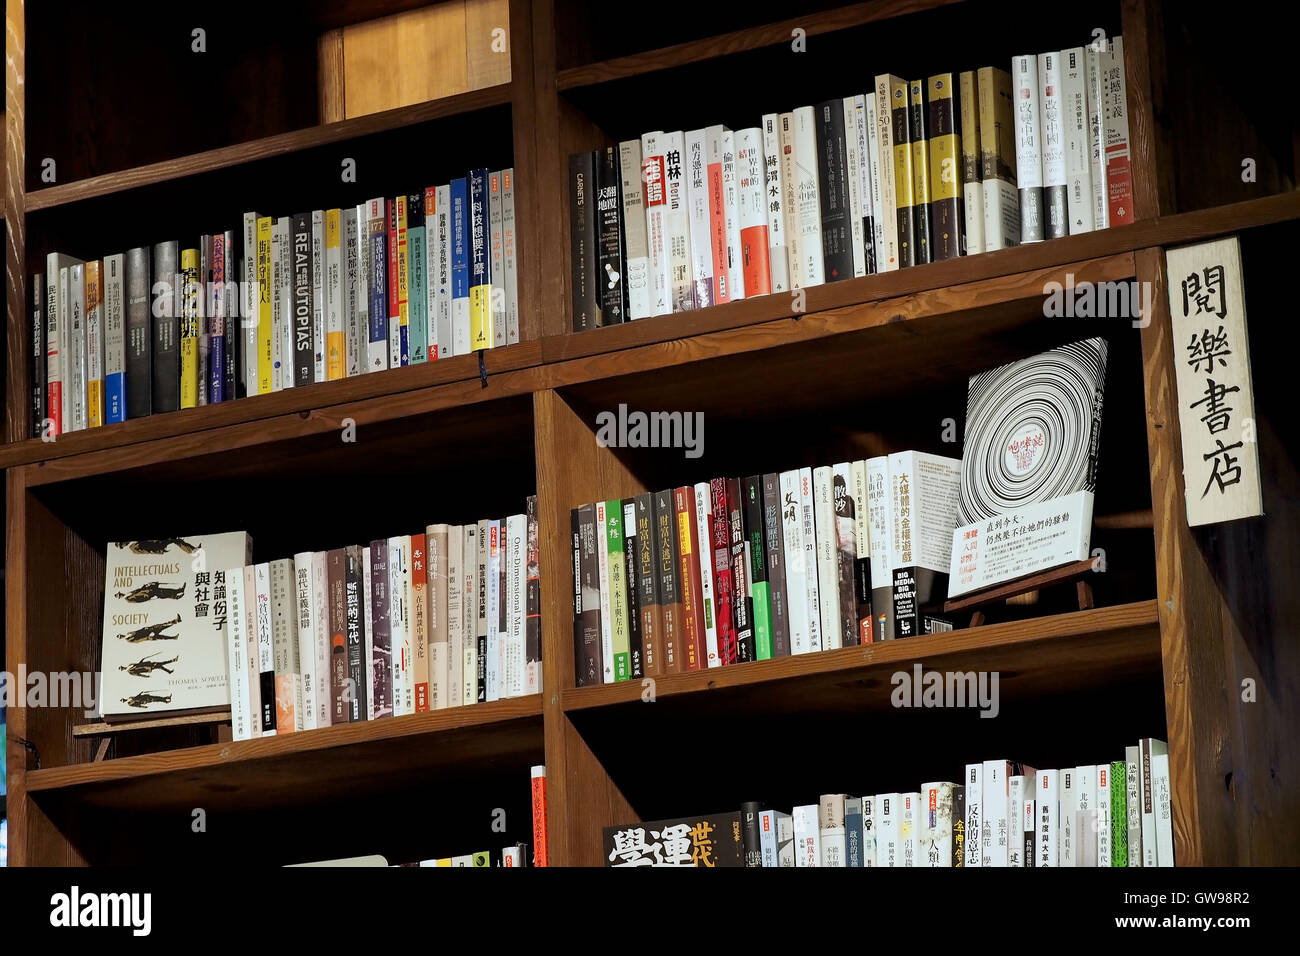 Wooden Bookshelf With At A Taipei Indie Bookstore Collection Of Chinese Titled Books